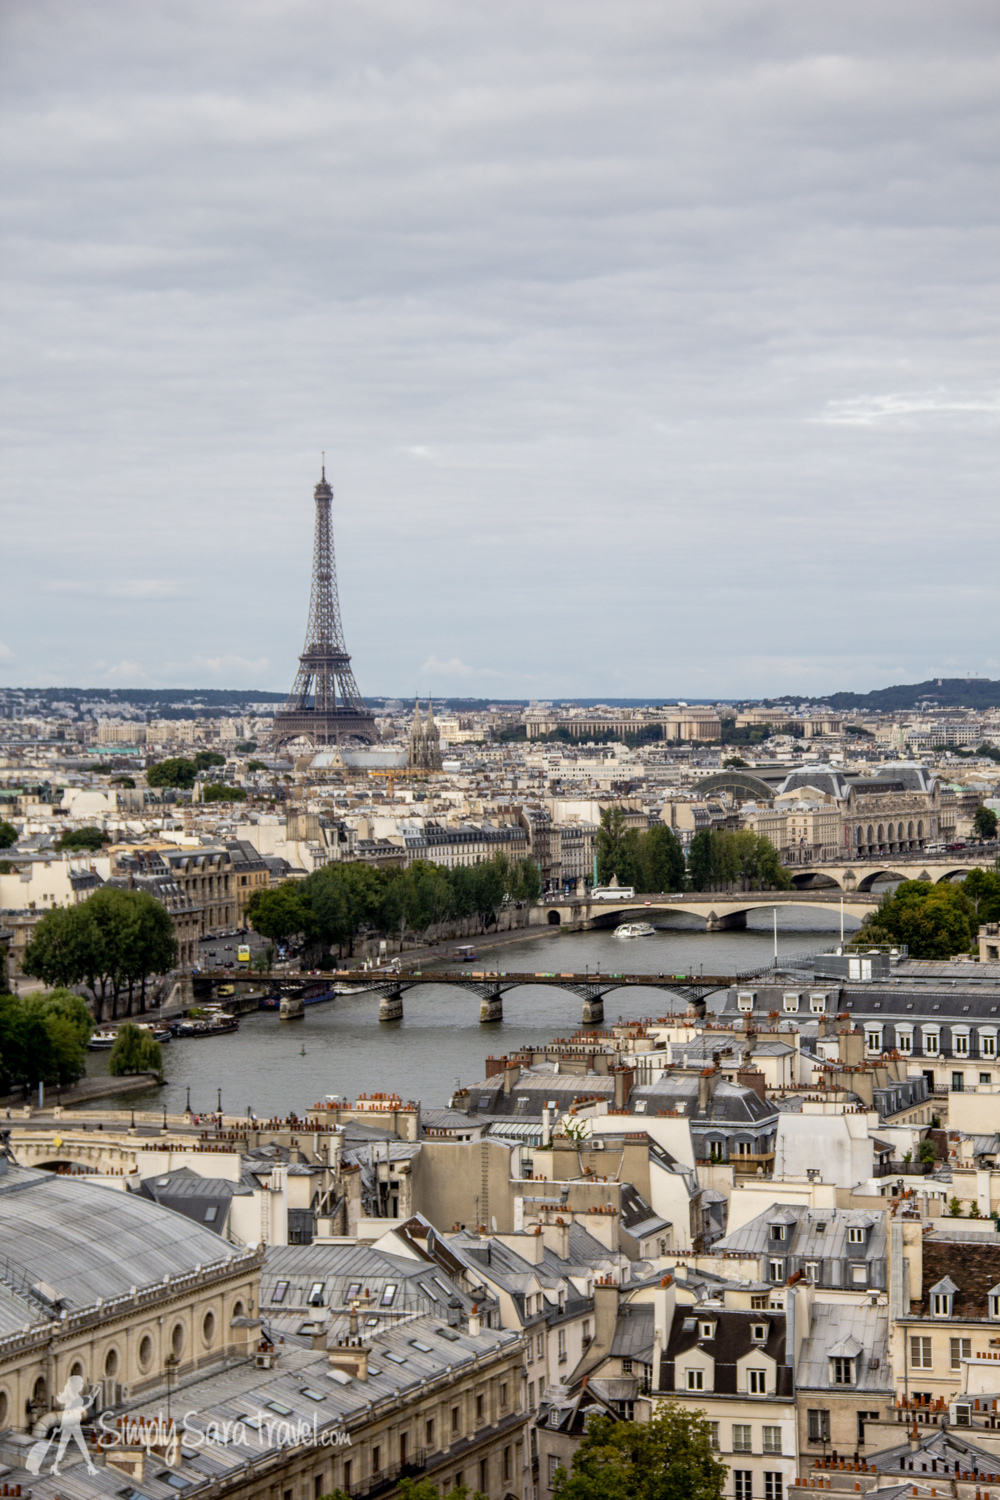 Amid those gorgeous Parisian rooftops stands the Eiffel Tower and Trocadéro to its right